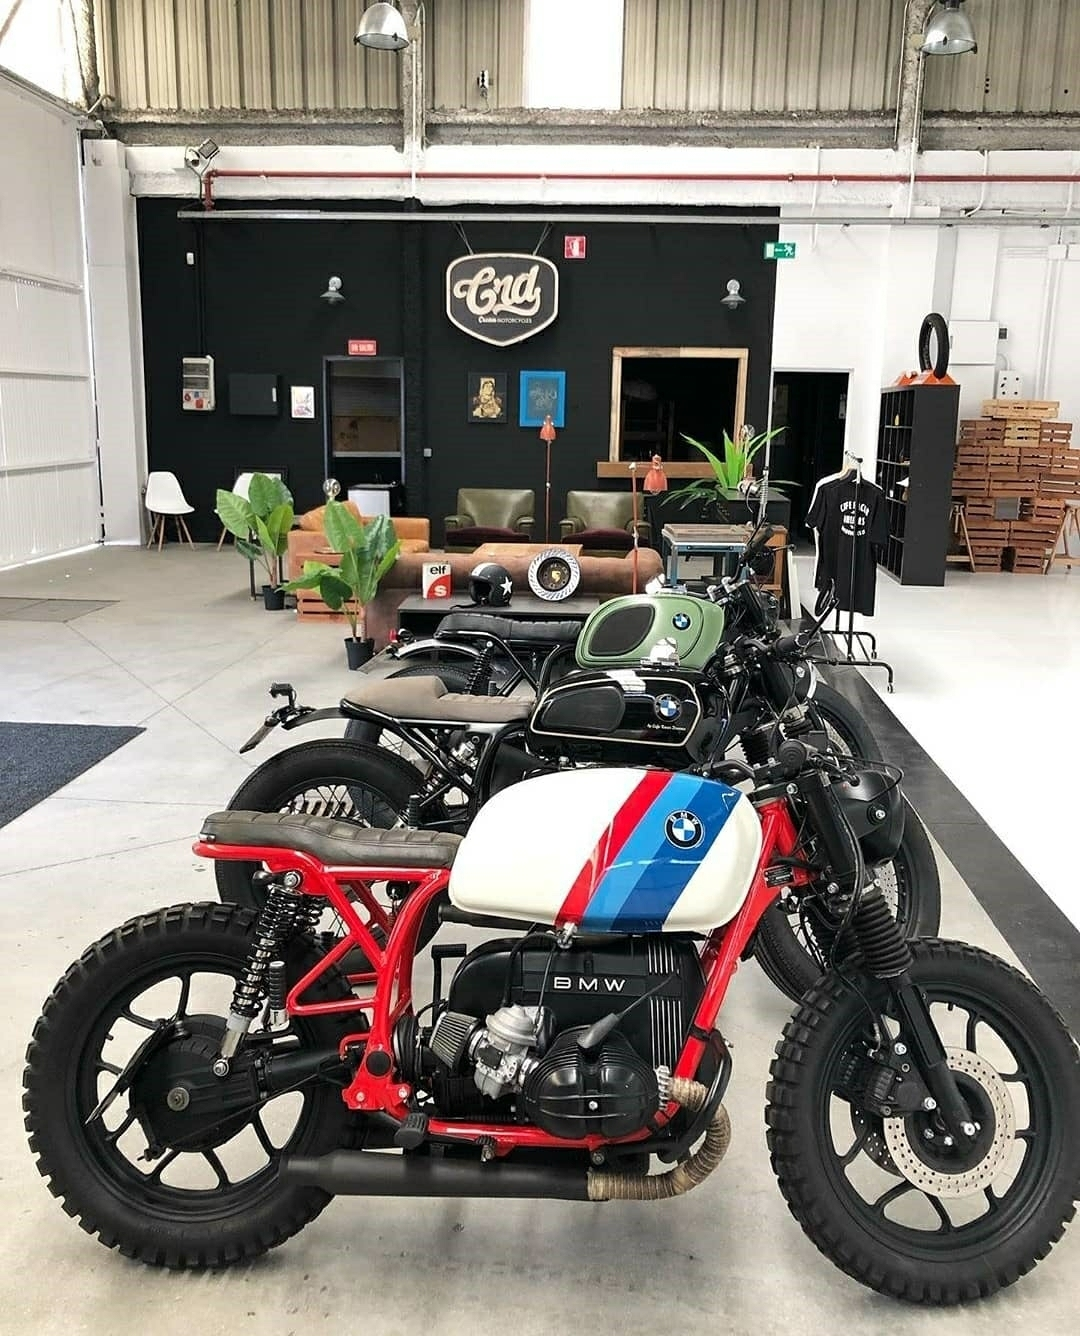 bmw motorcycle collection